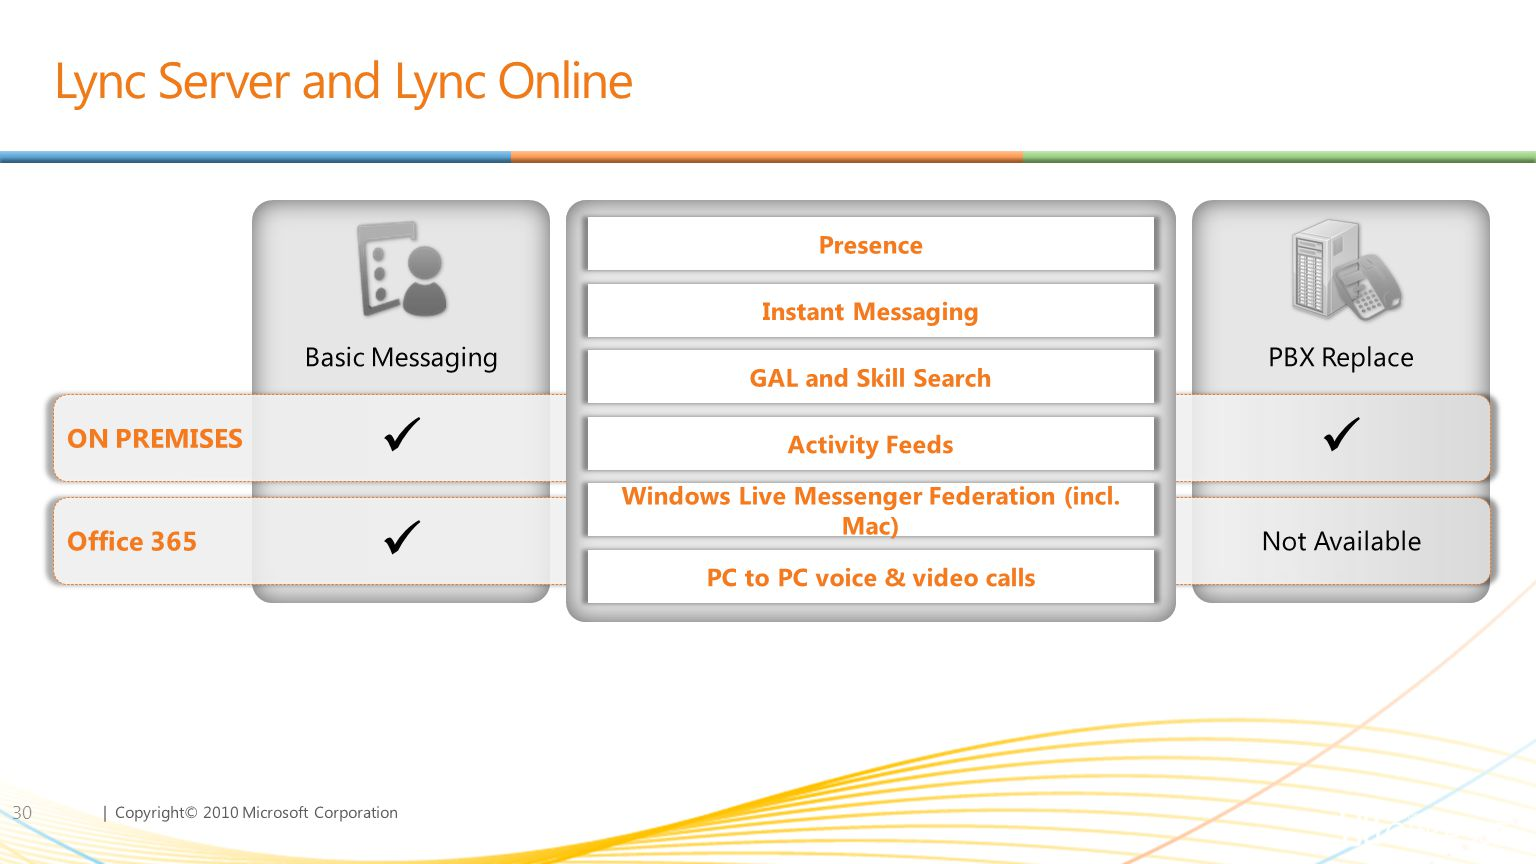 | Copyright© 2010 Microsoft Corporation Lync Server and Lync Online 30 Basic Messaging ConferencingVoicePBX Replace Not AvailableFY12